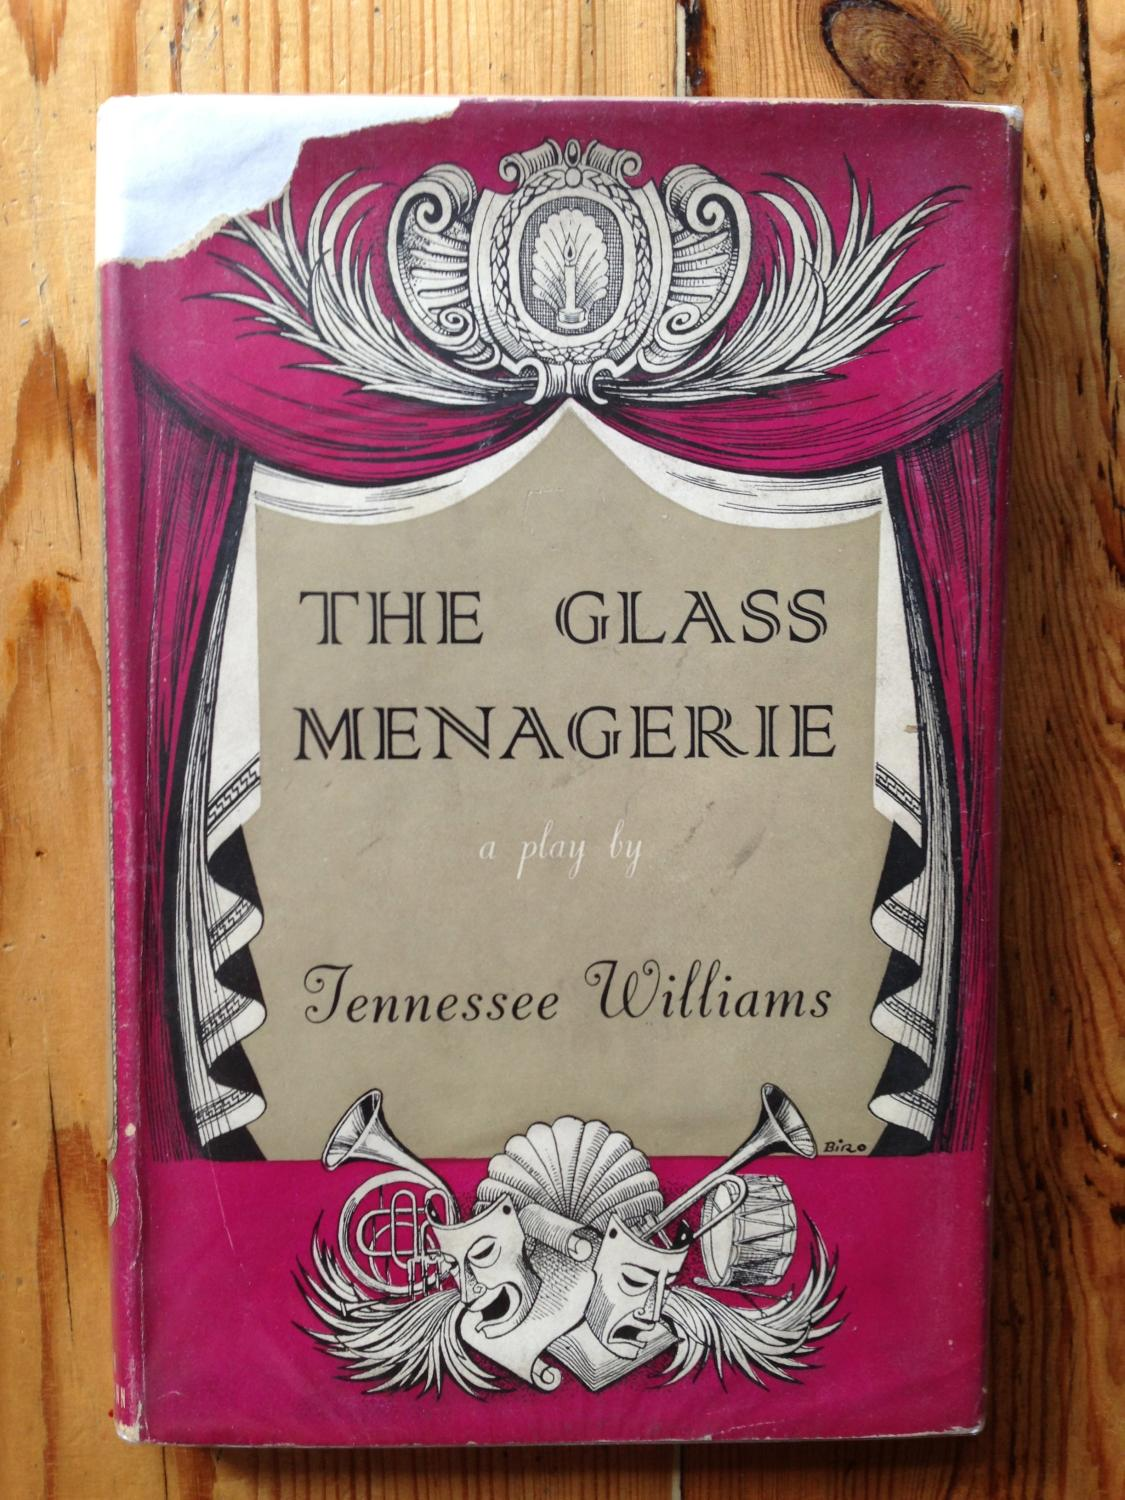 analysis of the play the glass menagerie written by tennessee williams The glass menagerie is a play that is very important to modern literature tennessee williams describes four separate characters, their dreams, and the harsh realities they faced in the modern world.